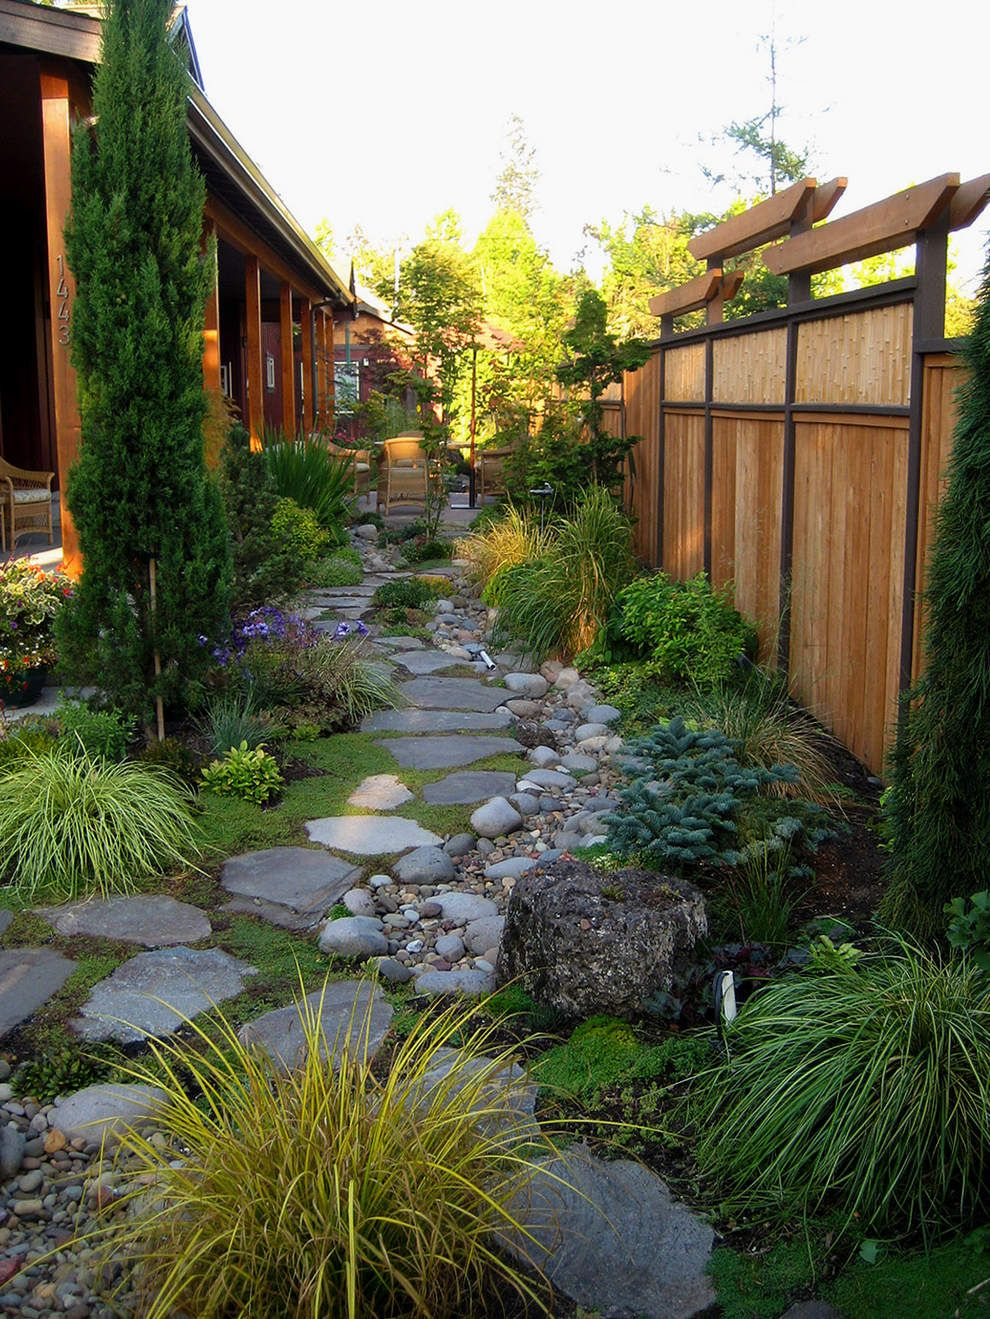 15 diy how to make your backyard awesome ideas 2 dry creek bed